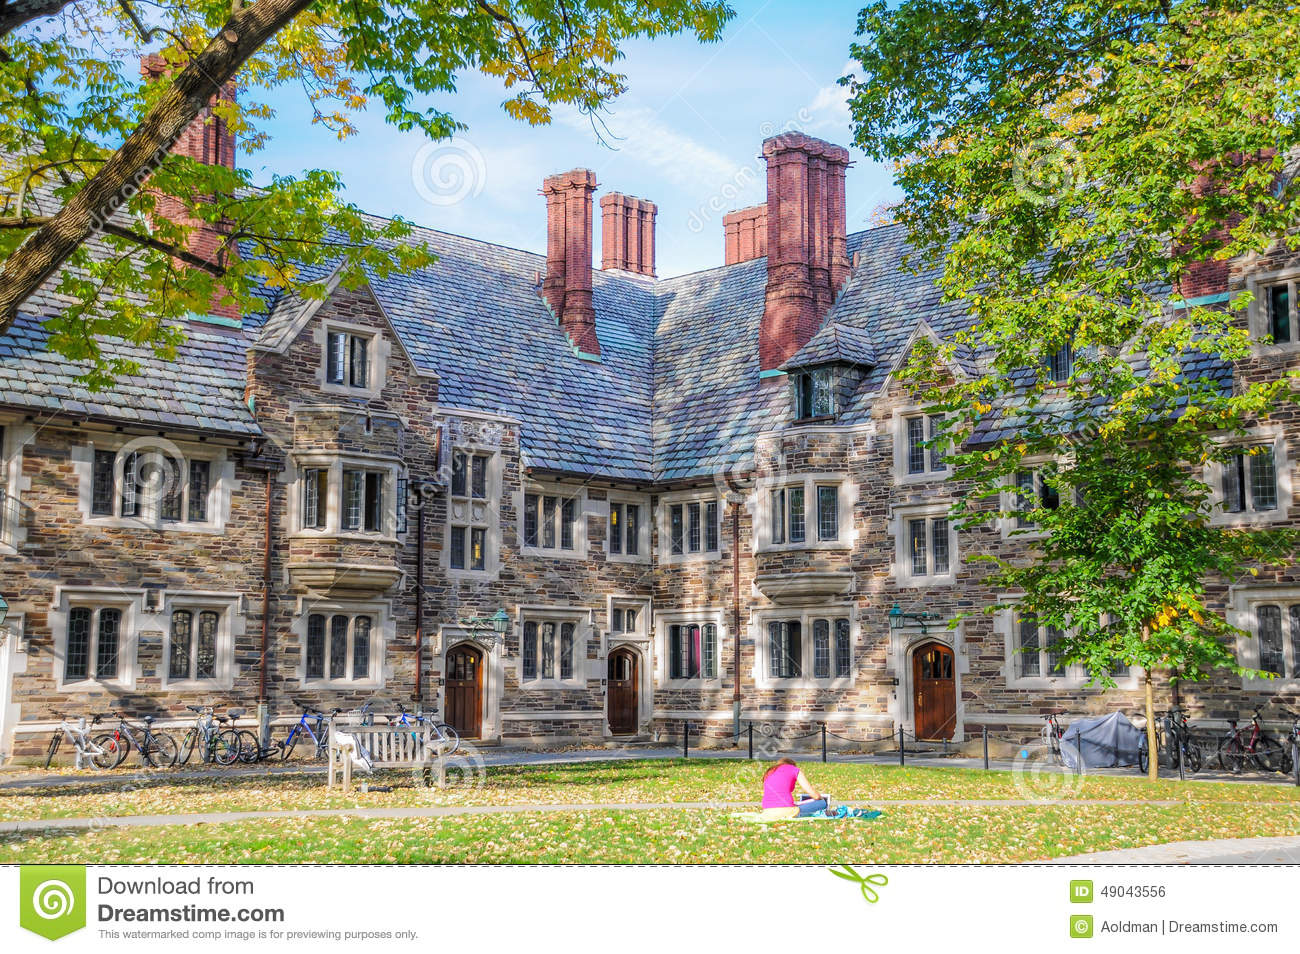 Illustration what is princeton known for